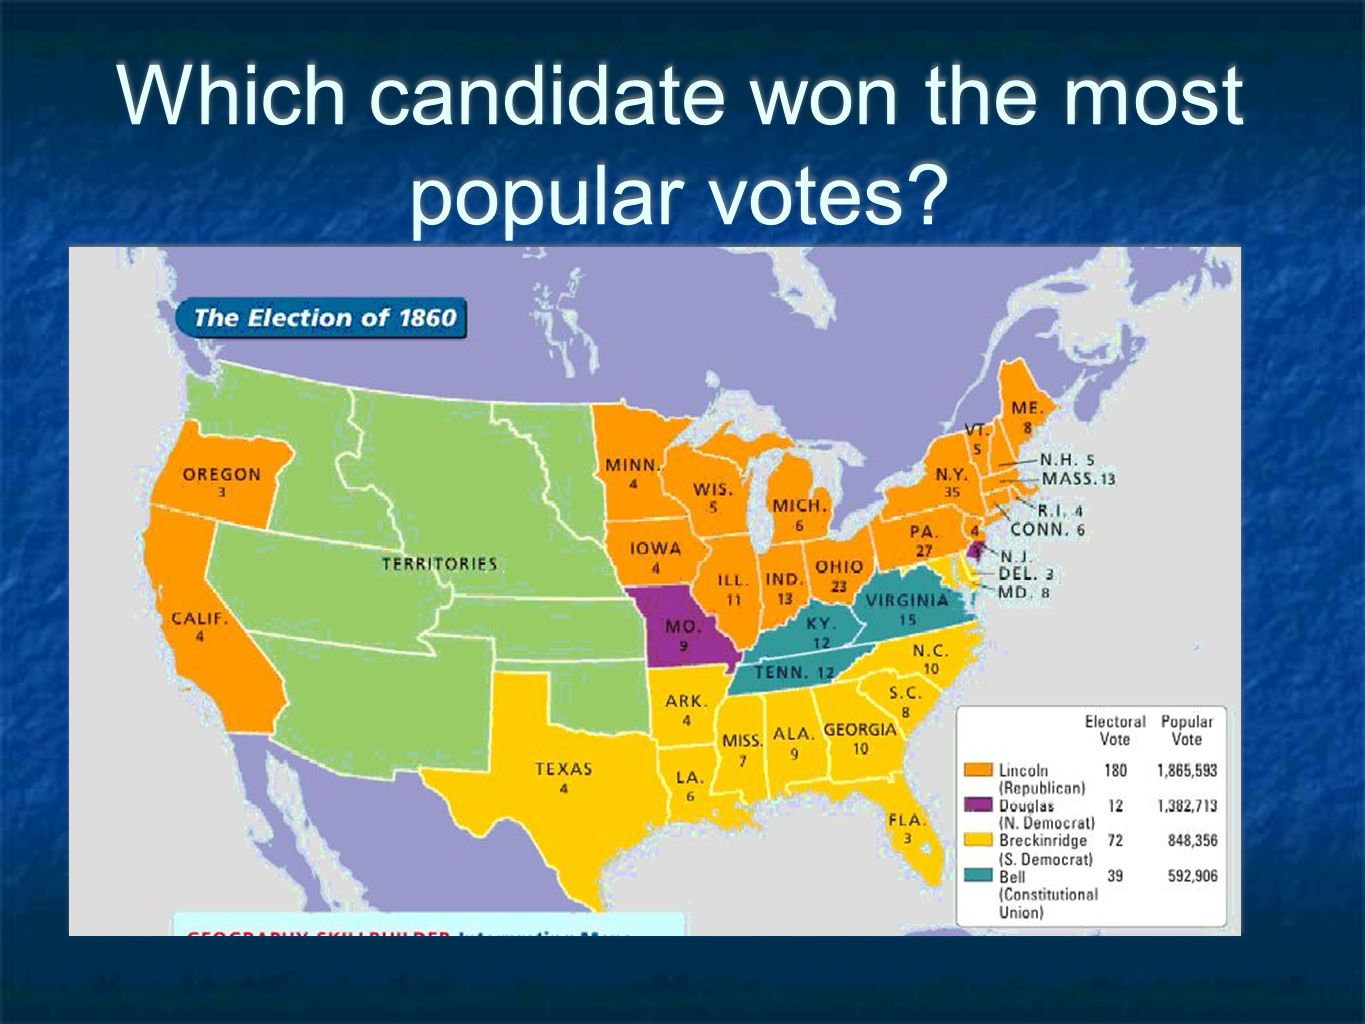 Which candidate won the most popular votes